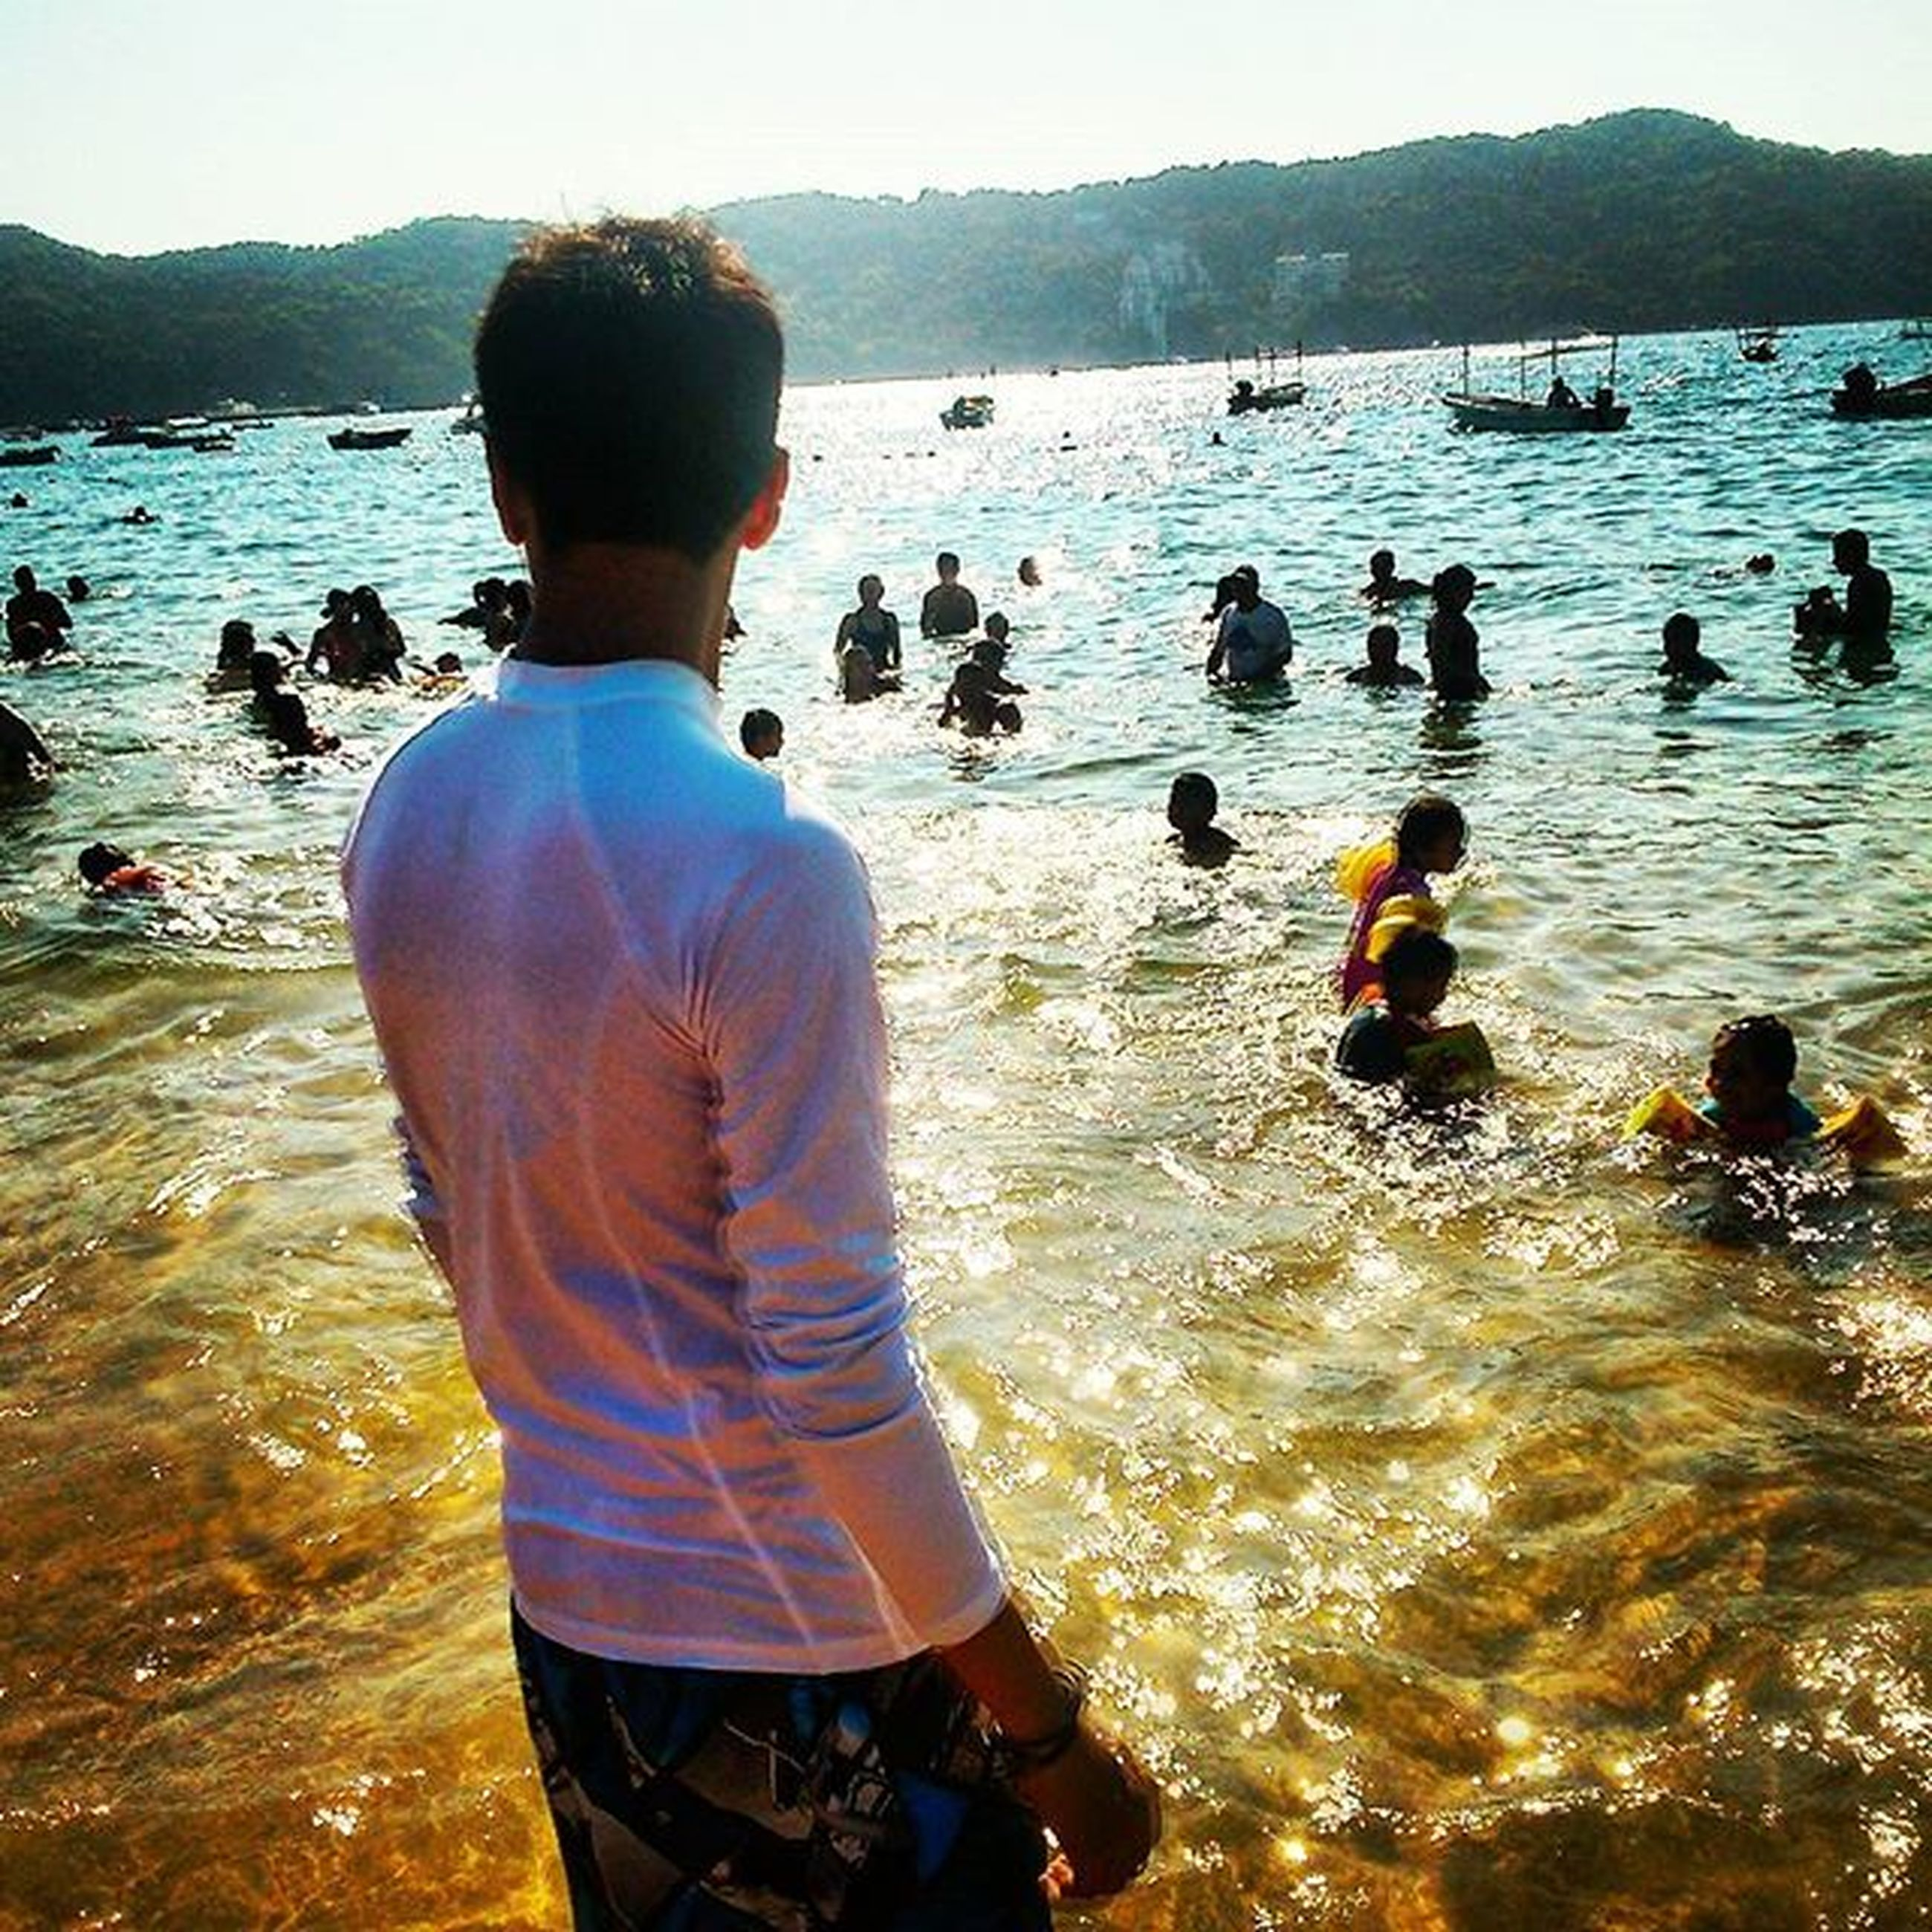 water, lifestyles, leisure activity, sea, beach, rear view, togetherness, men, mountain, shore, scenics, vacations, beauty in nature, standing, person, tranquility, nature, lake, tranquil scene